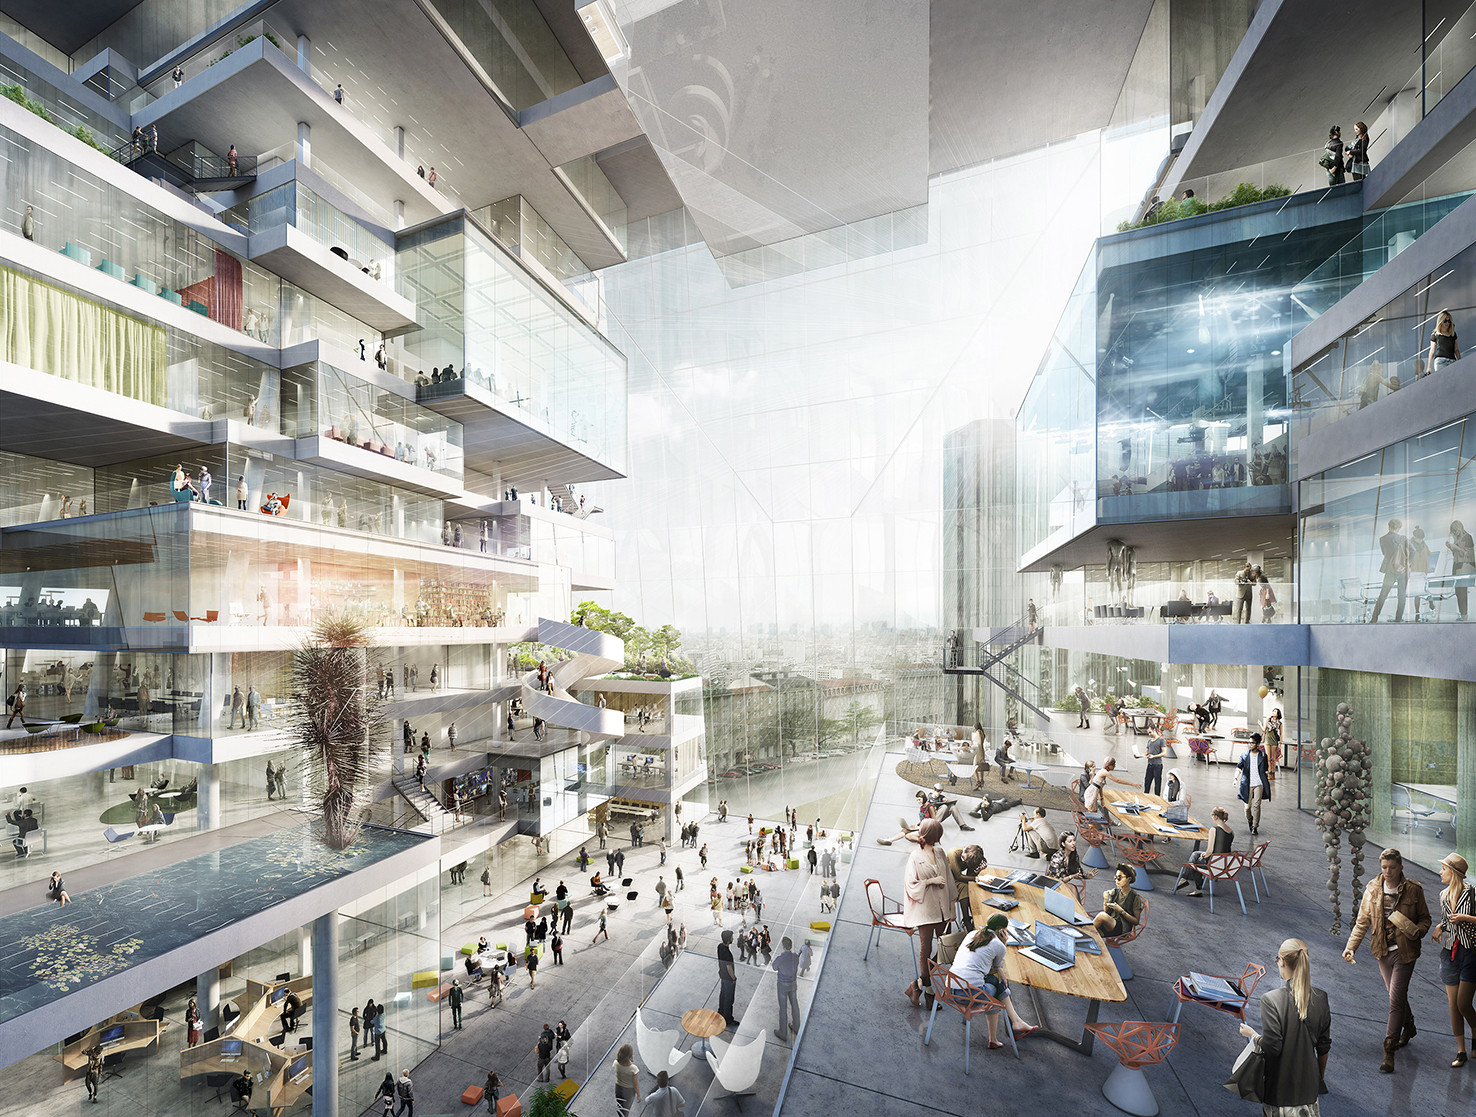 BIG, OMA, Büro-OS To Compete for New Media Campus in Berlin, Proposal from Büro-OS. Image Courtesy of Axel Springer SE